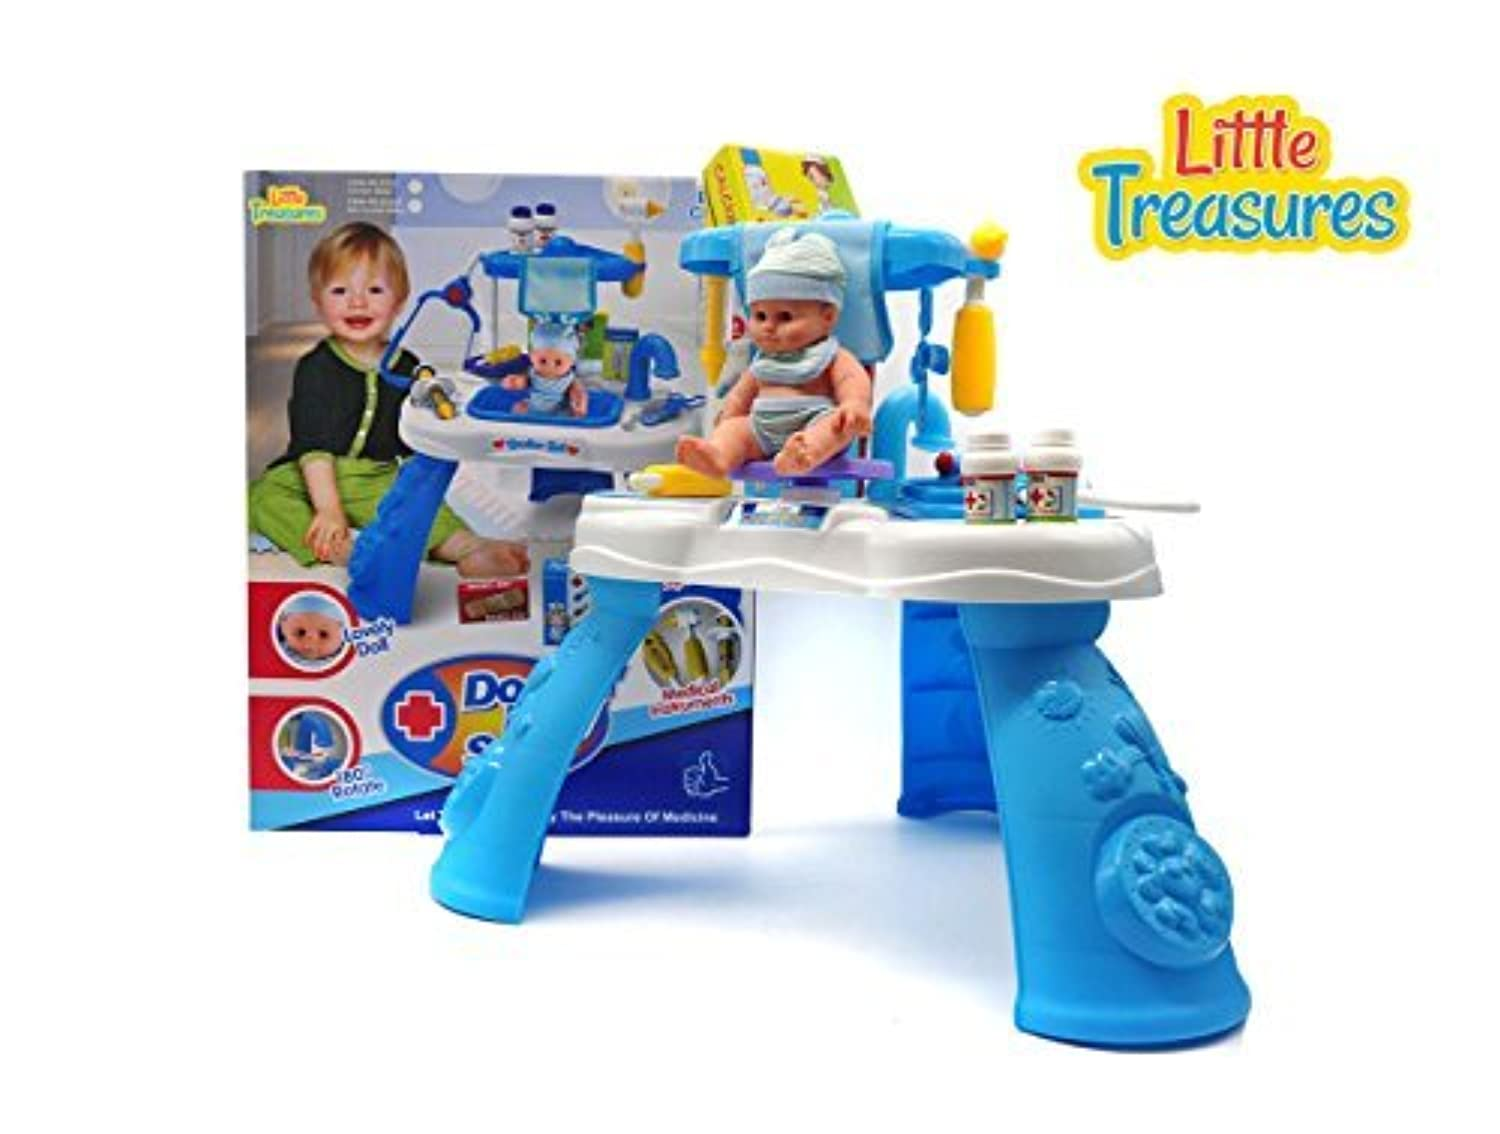 Little Treasures Doctor Play Set - Complete with Medical Station Sink Medical Instruments and Supplies - pretend Dr nurse 21+ pieces play toy set for children 3+ [並行輸入品]